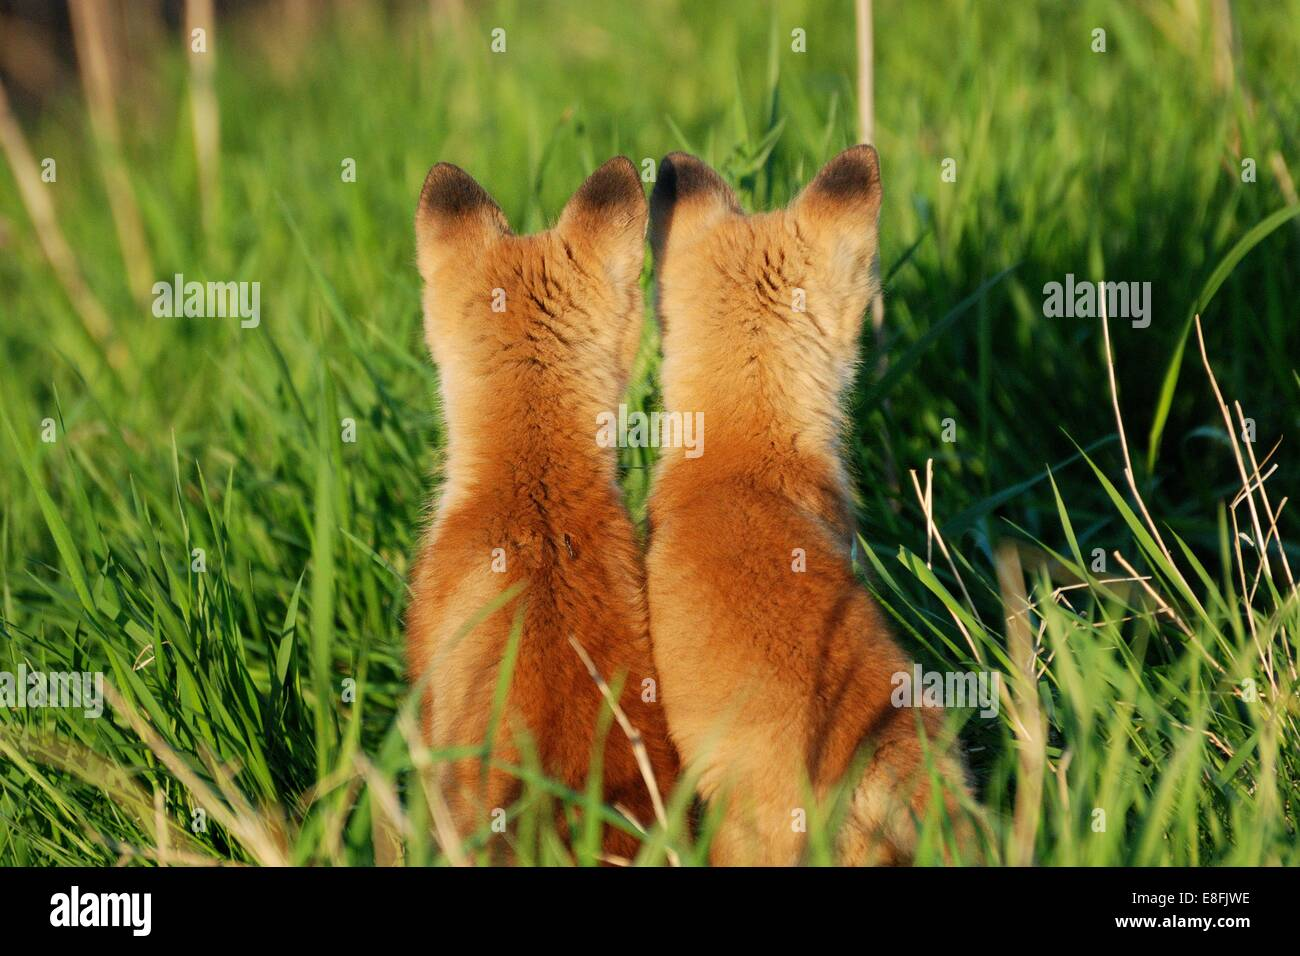 Two fox cubs sitting side by side, Canada - Stock Image